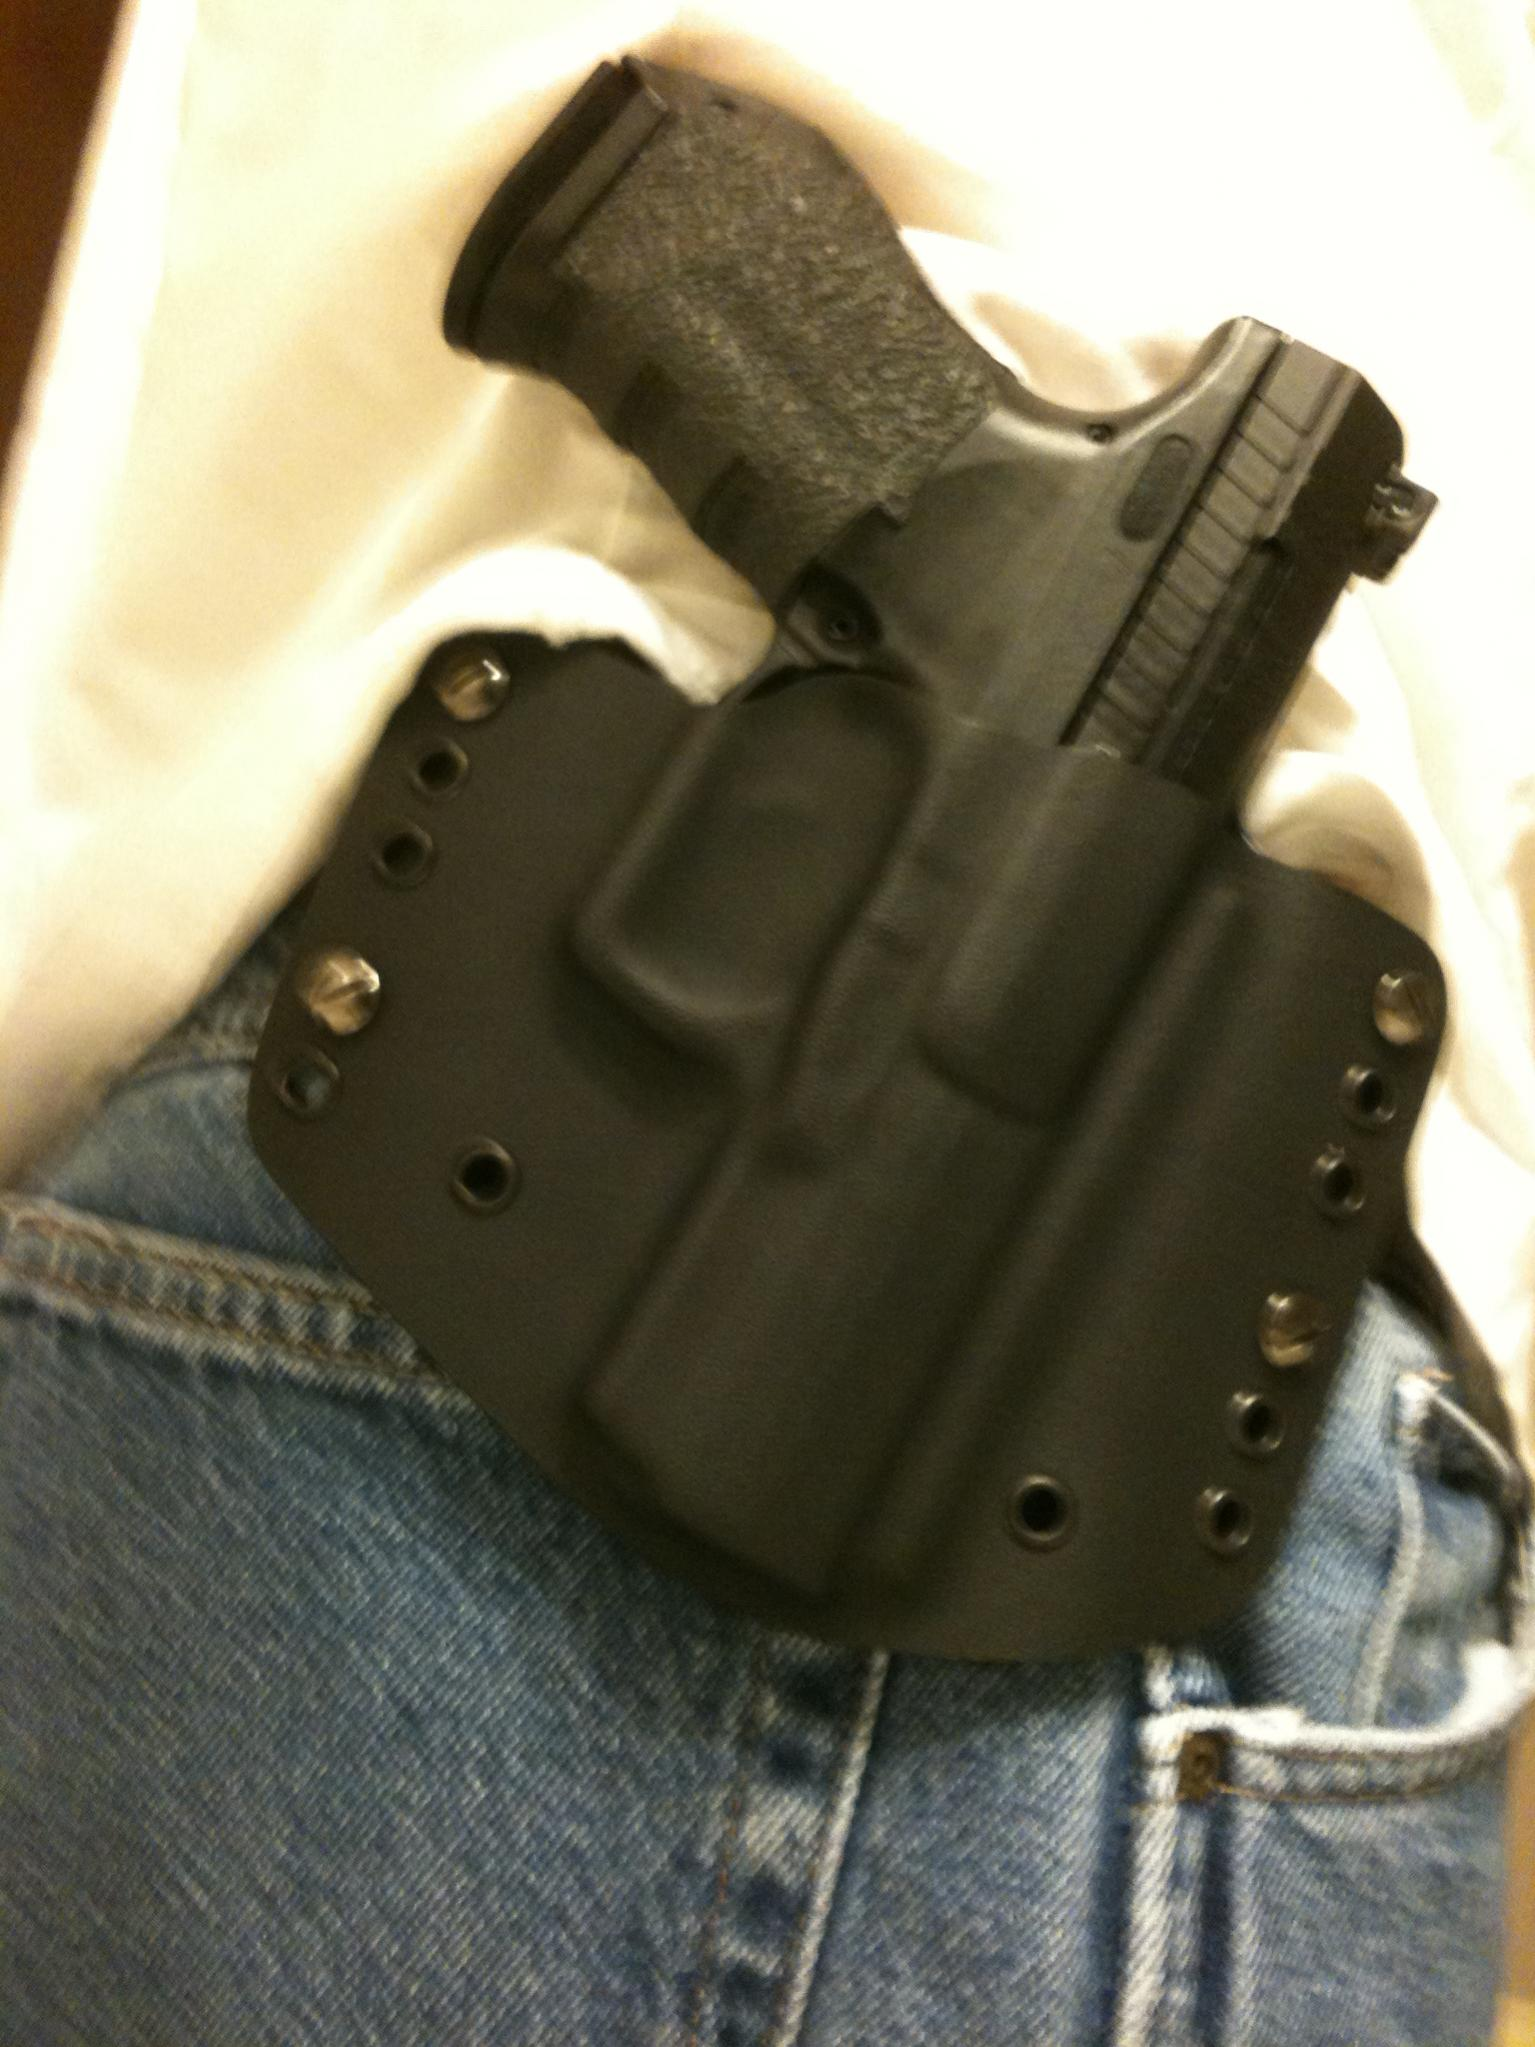 Help gotta buy a holster I don't need-new-holster2.jpg